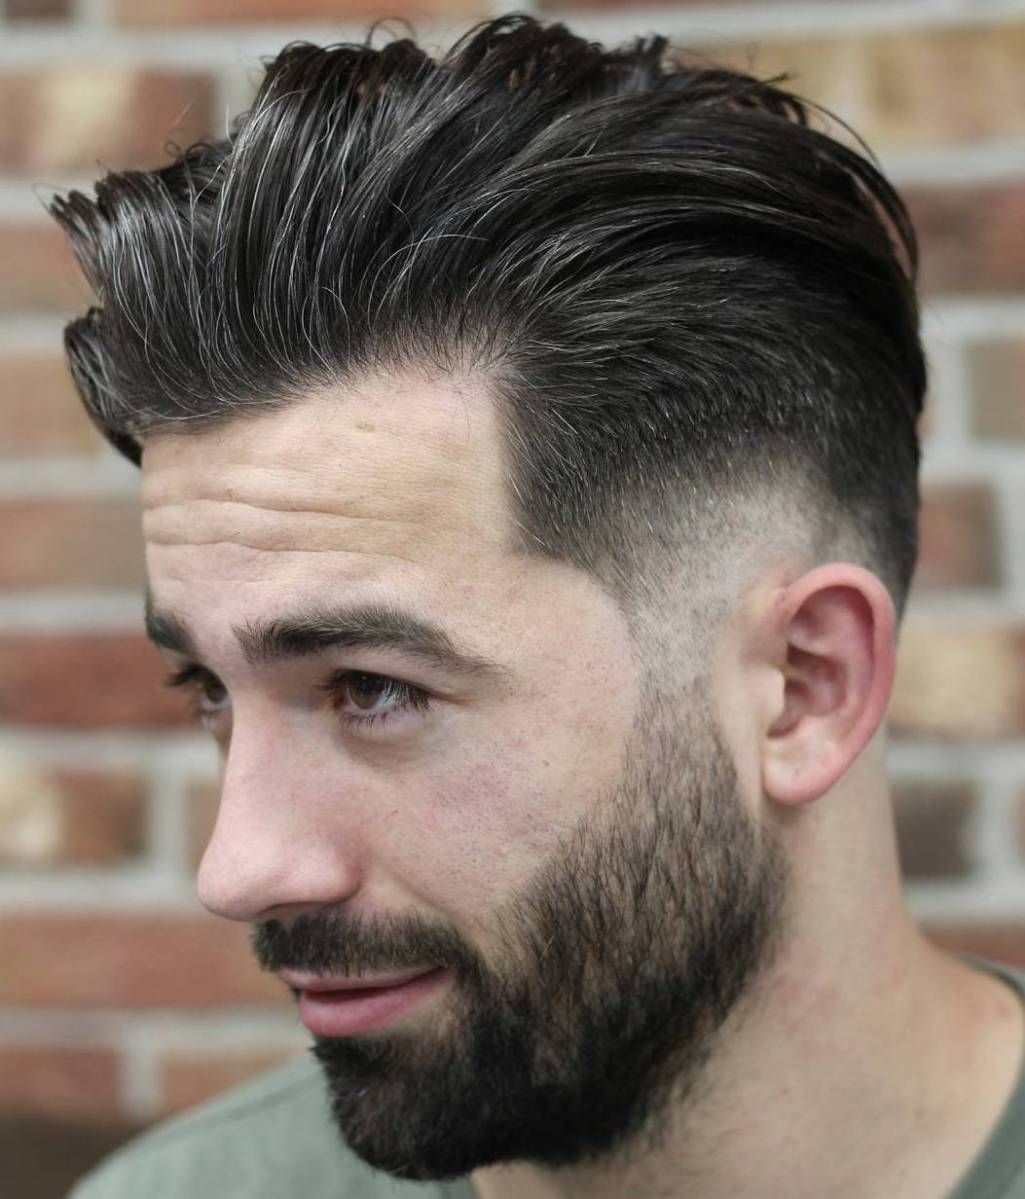 20 stylish low fade haircuts for men | haircuts in 2019